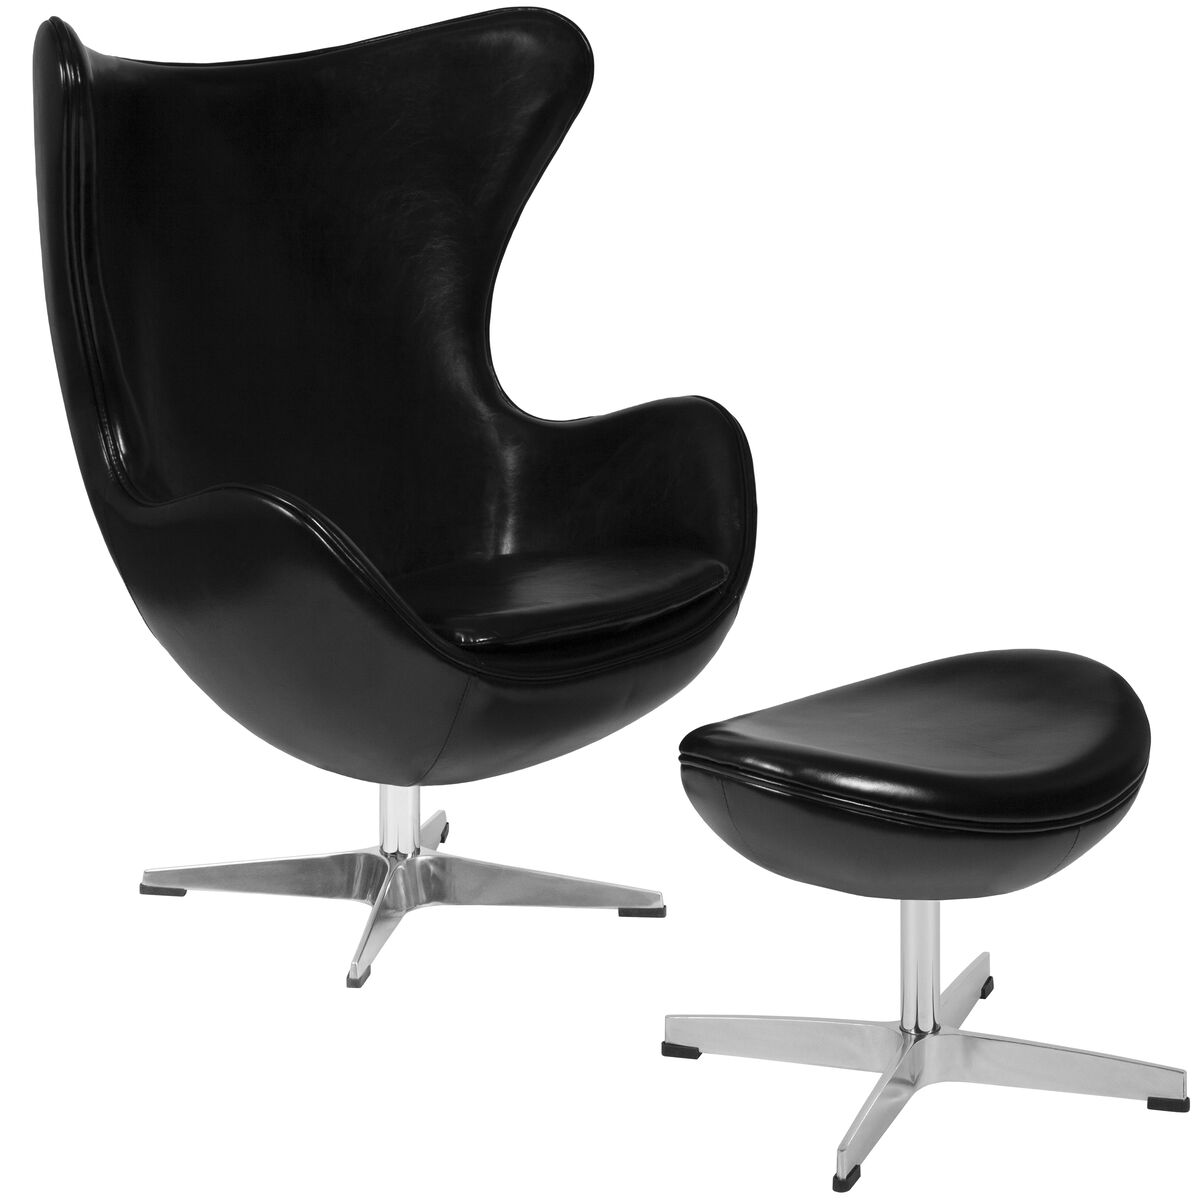 Surprising Black Leather Egg Chair With Tilt Lock Mechanism And Ottoman Ibusinesslaw Wood Chair Design Ideas Ibusinesslaworg